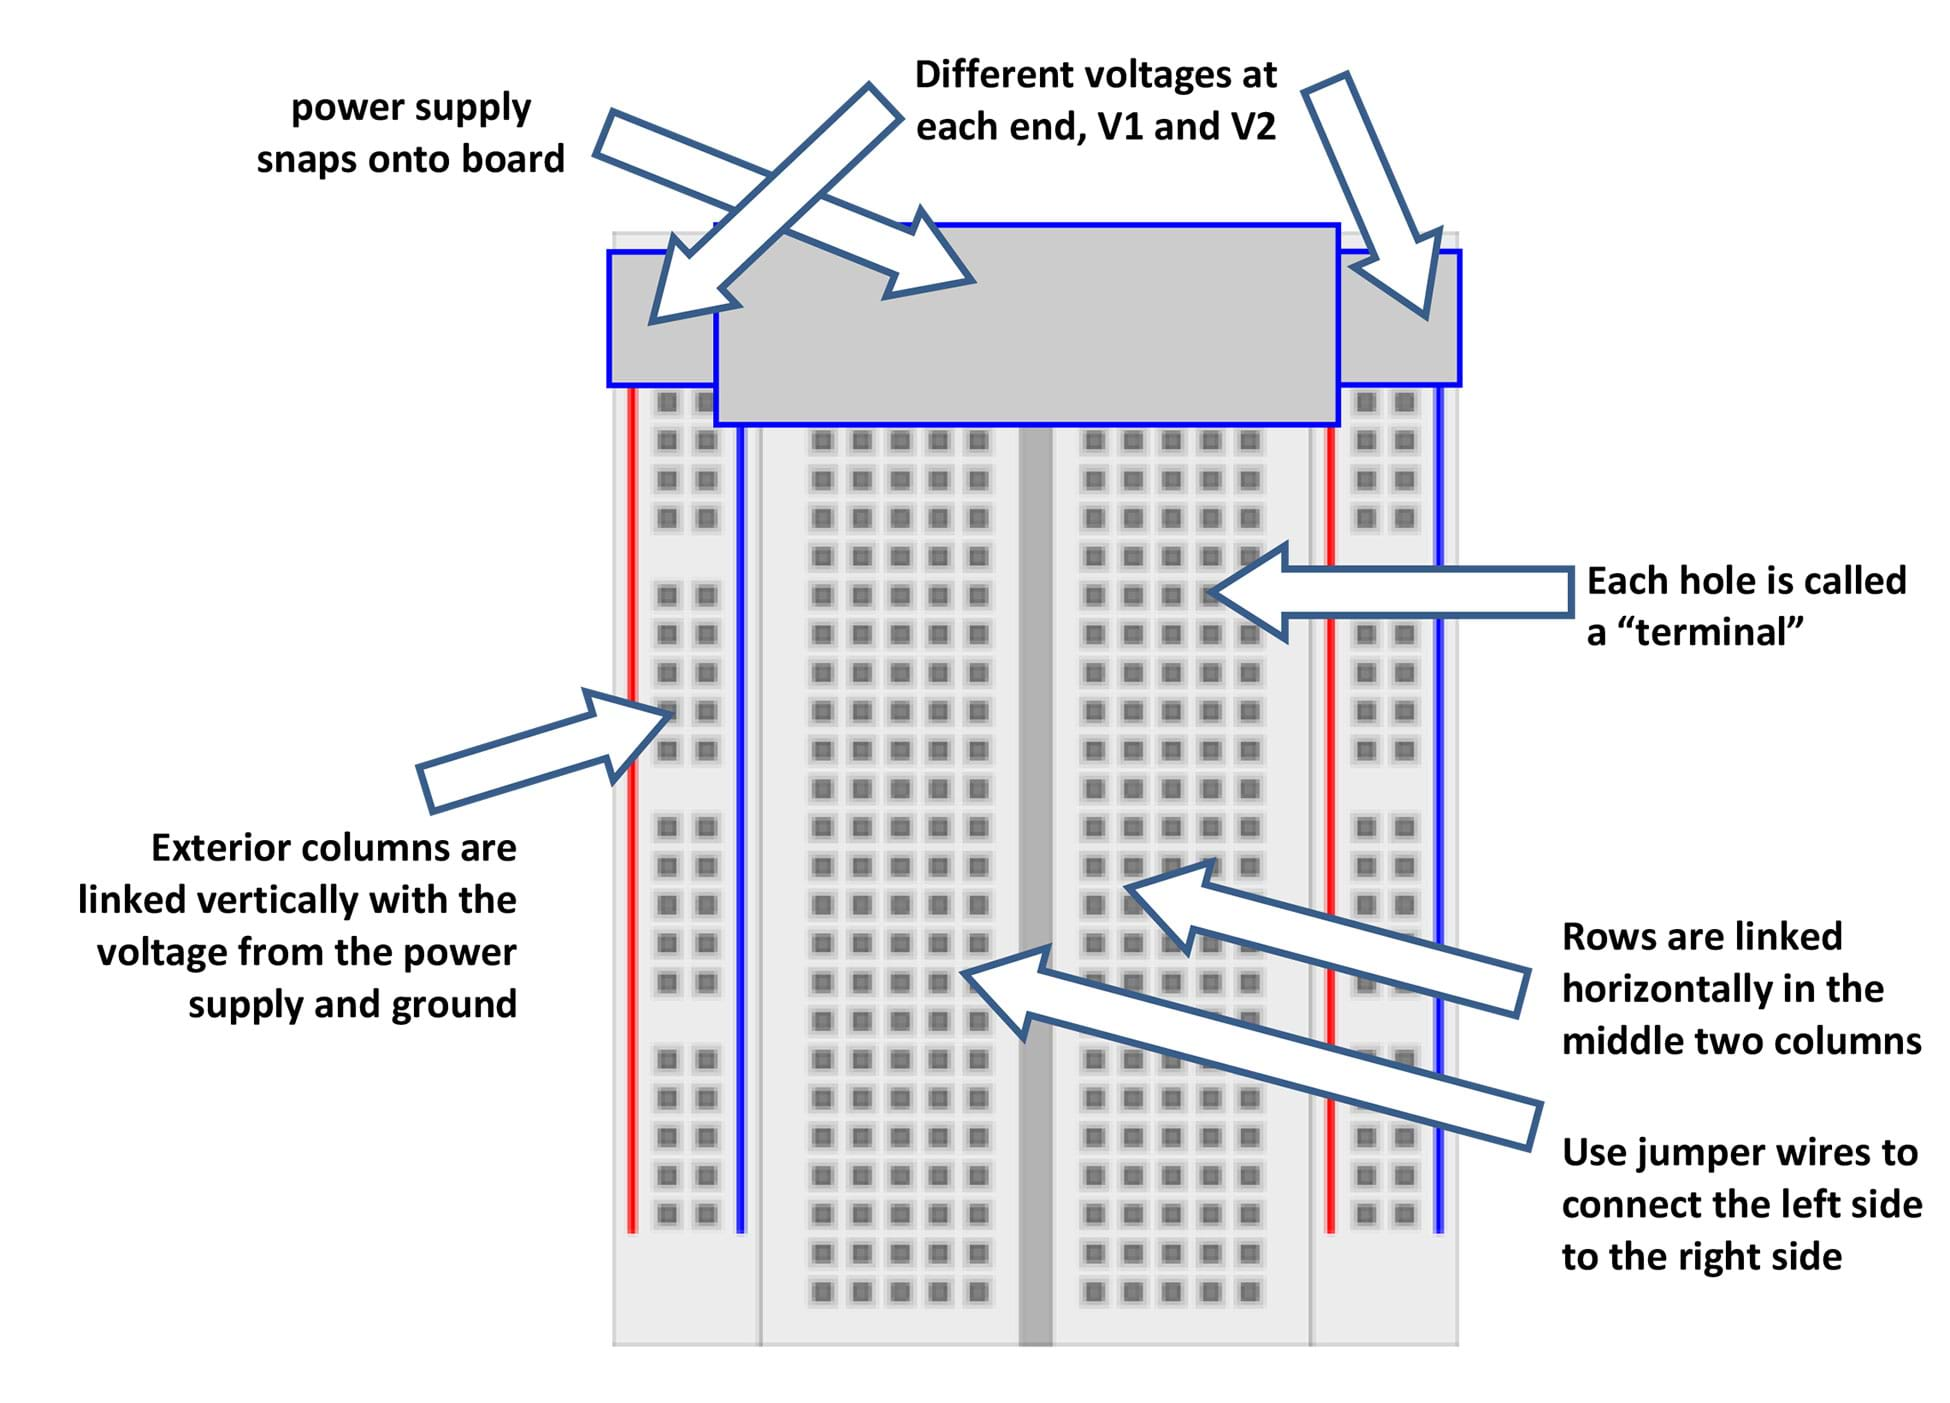 hight resolution of a breadboard diagram with arrows and labels k2 power supply snaps onto the top of